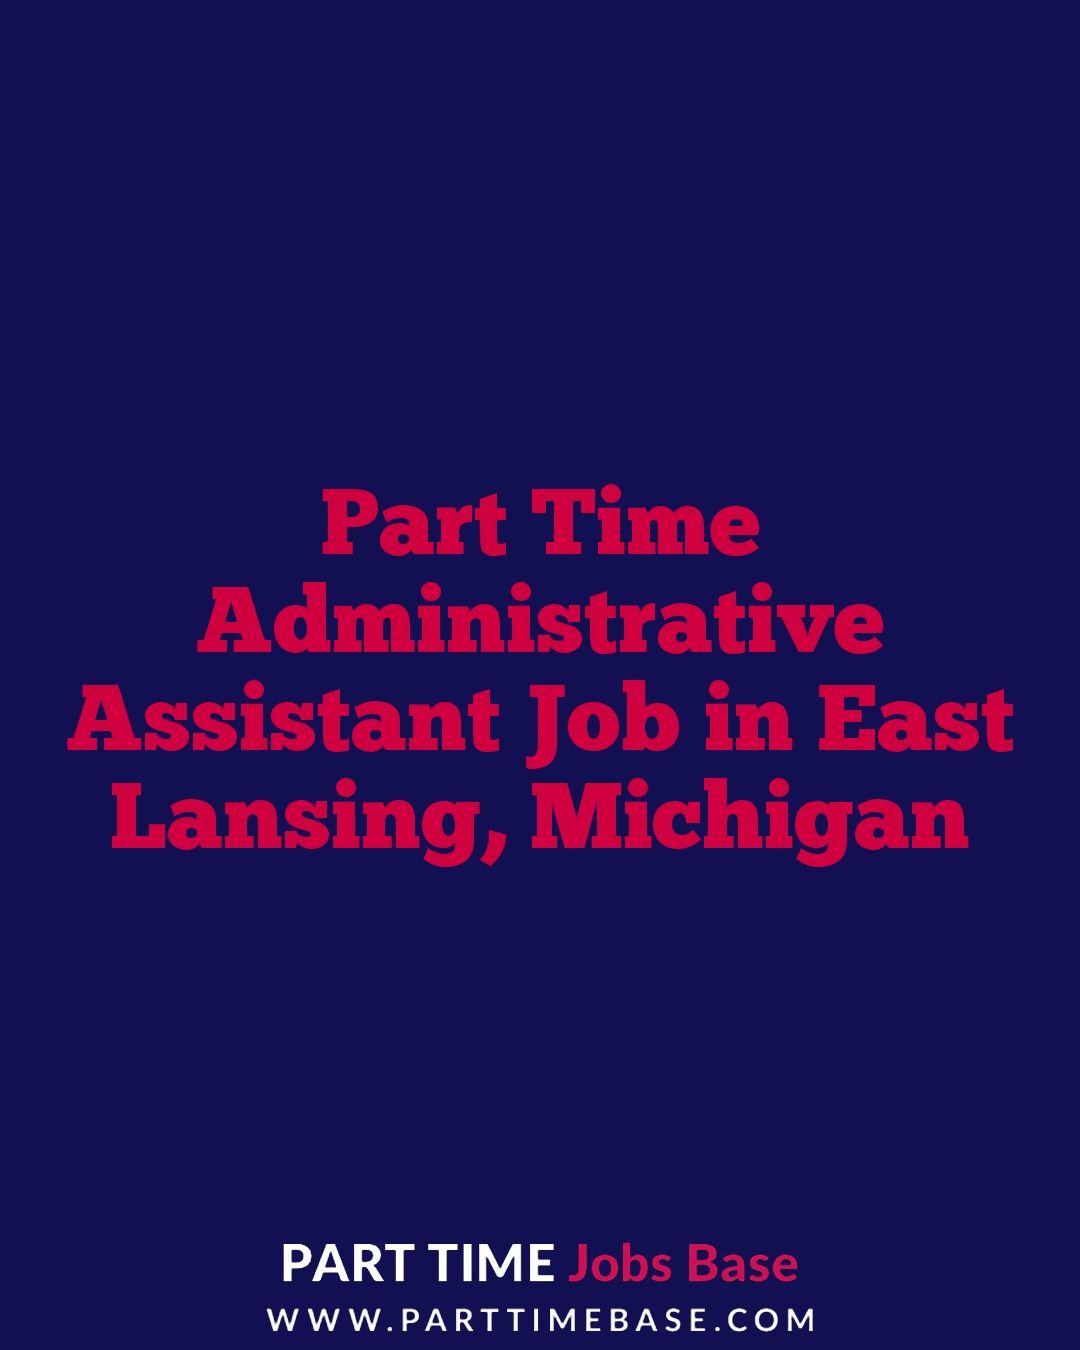 Part time administrative assistant job in east lansing